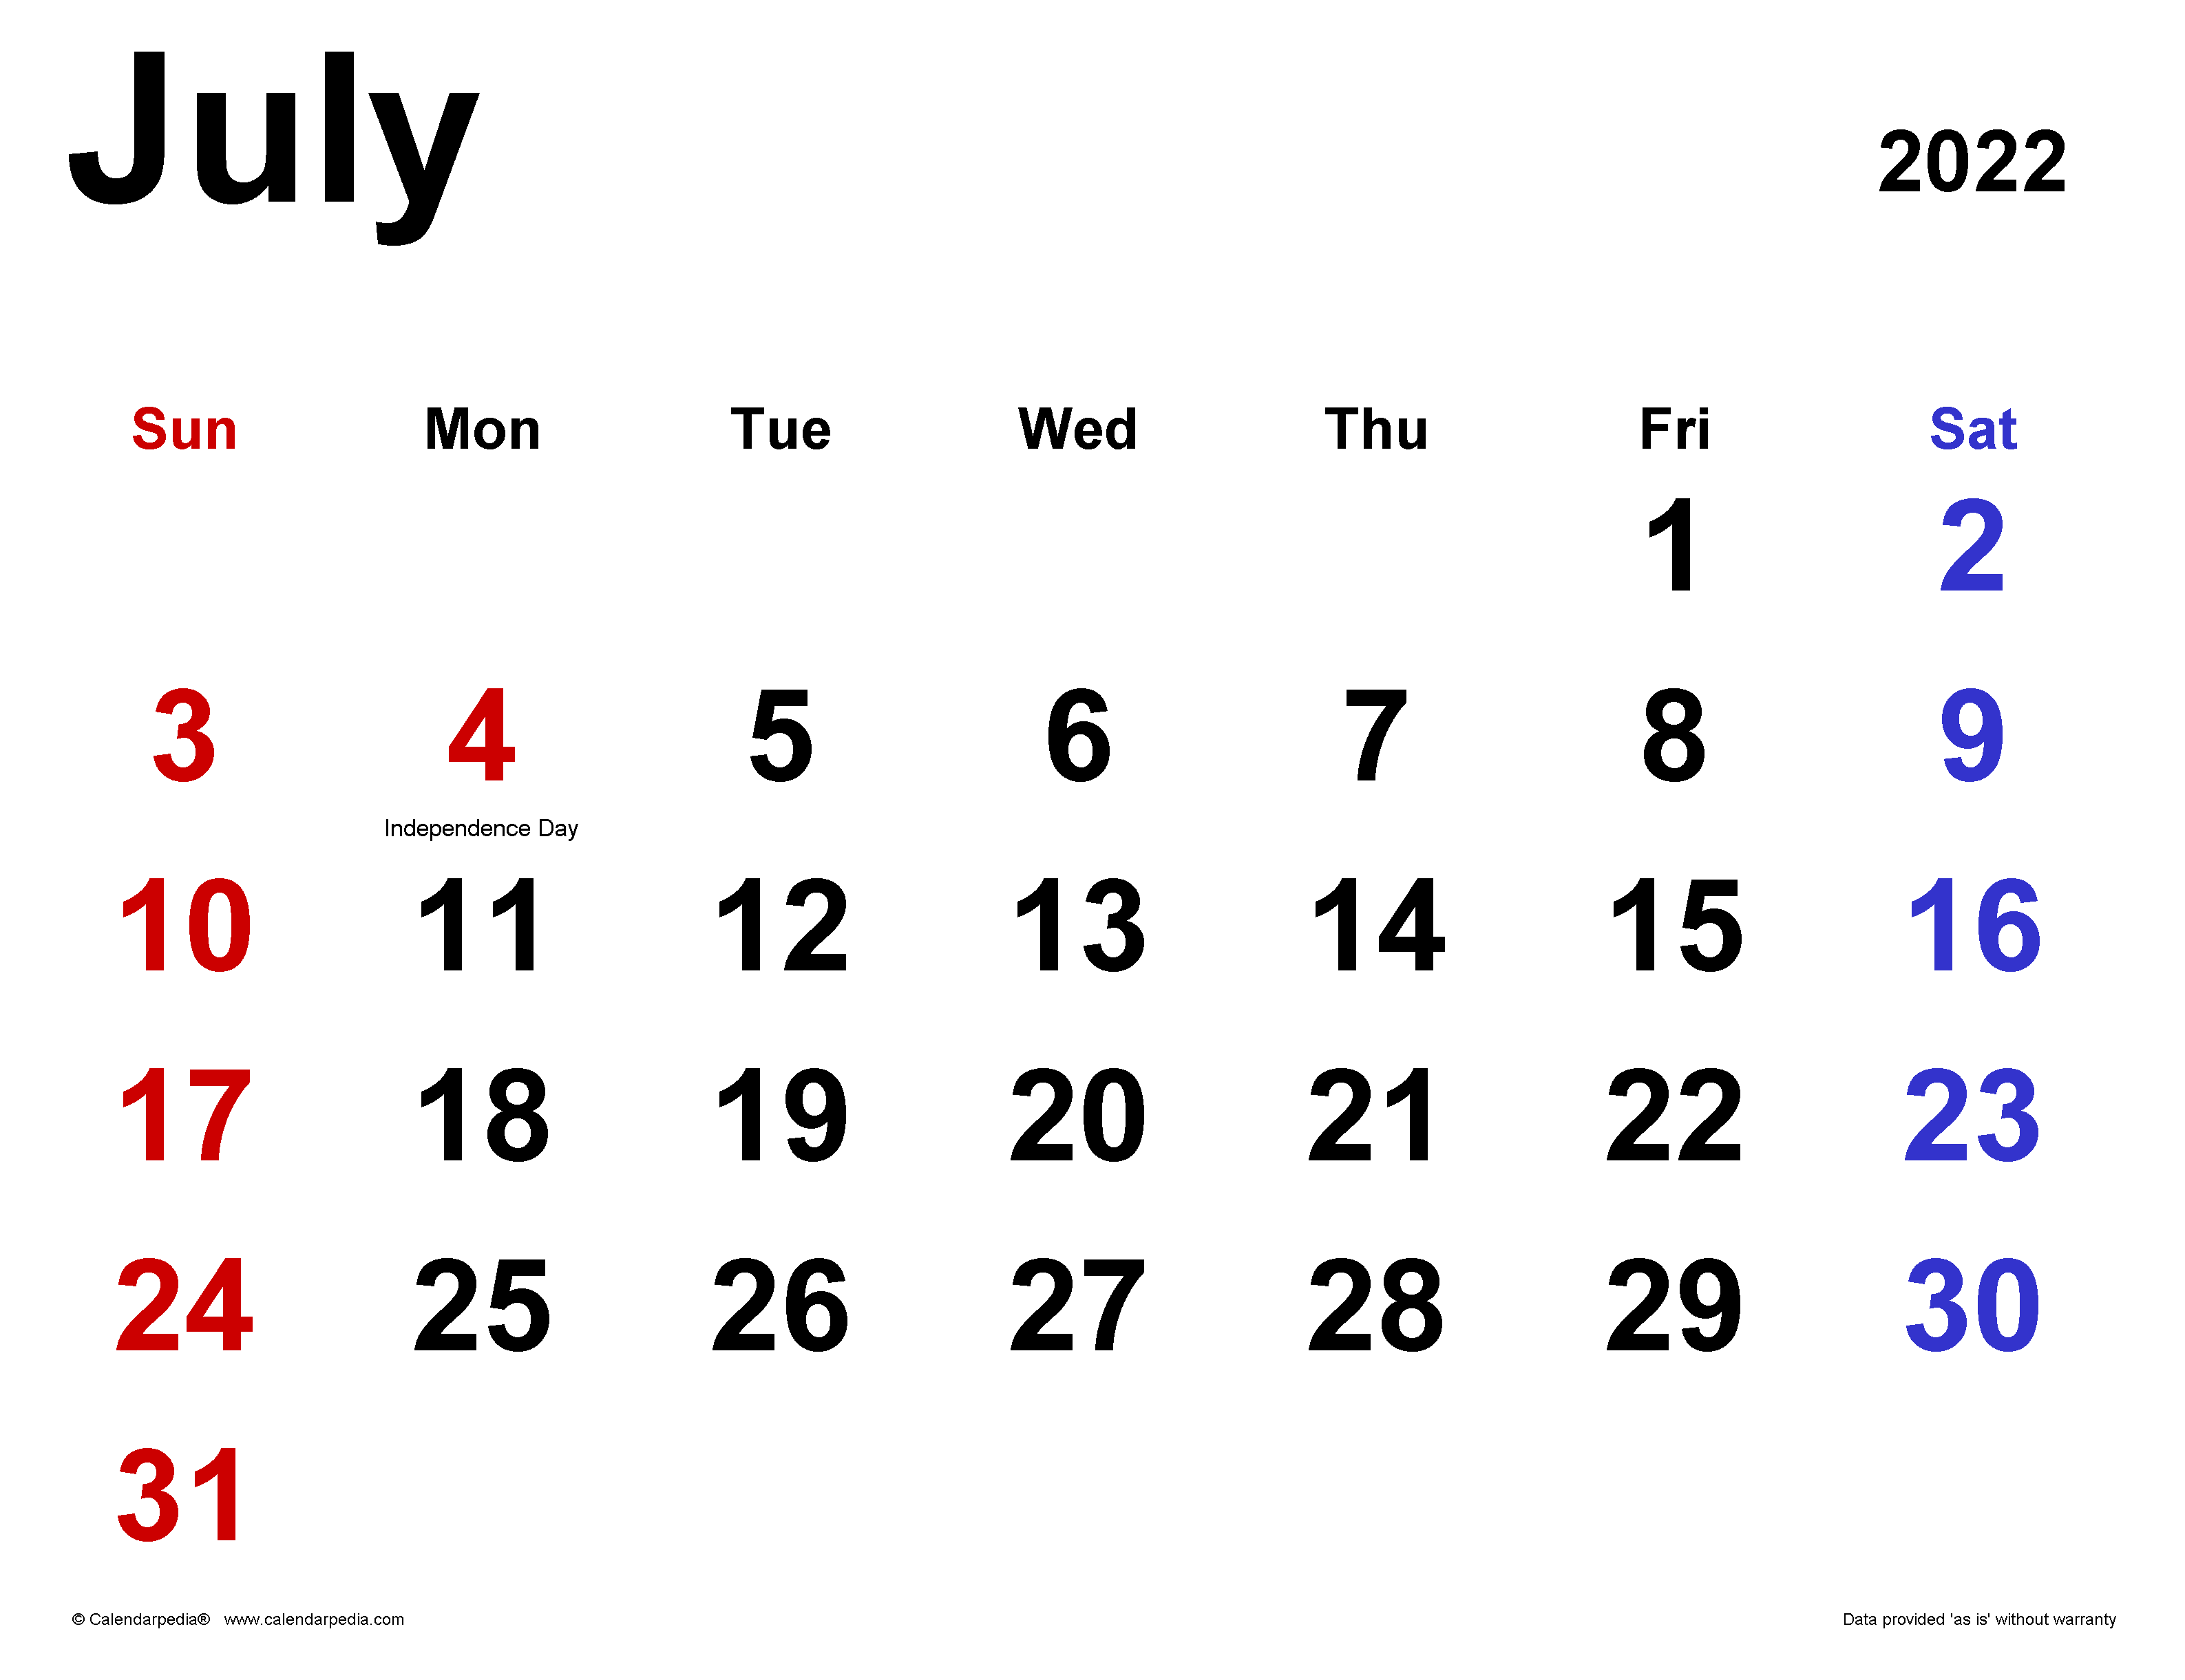 July 4 2022 Calendar.July 2022 Calendar Templates For Word Excel And Pdf